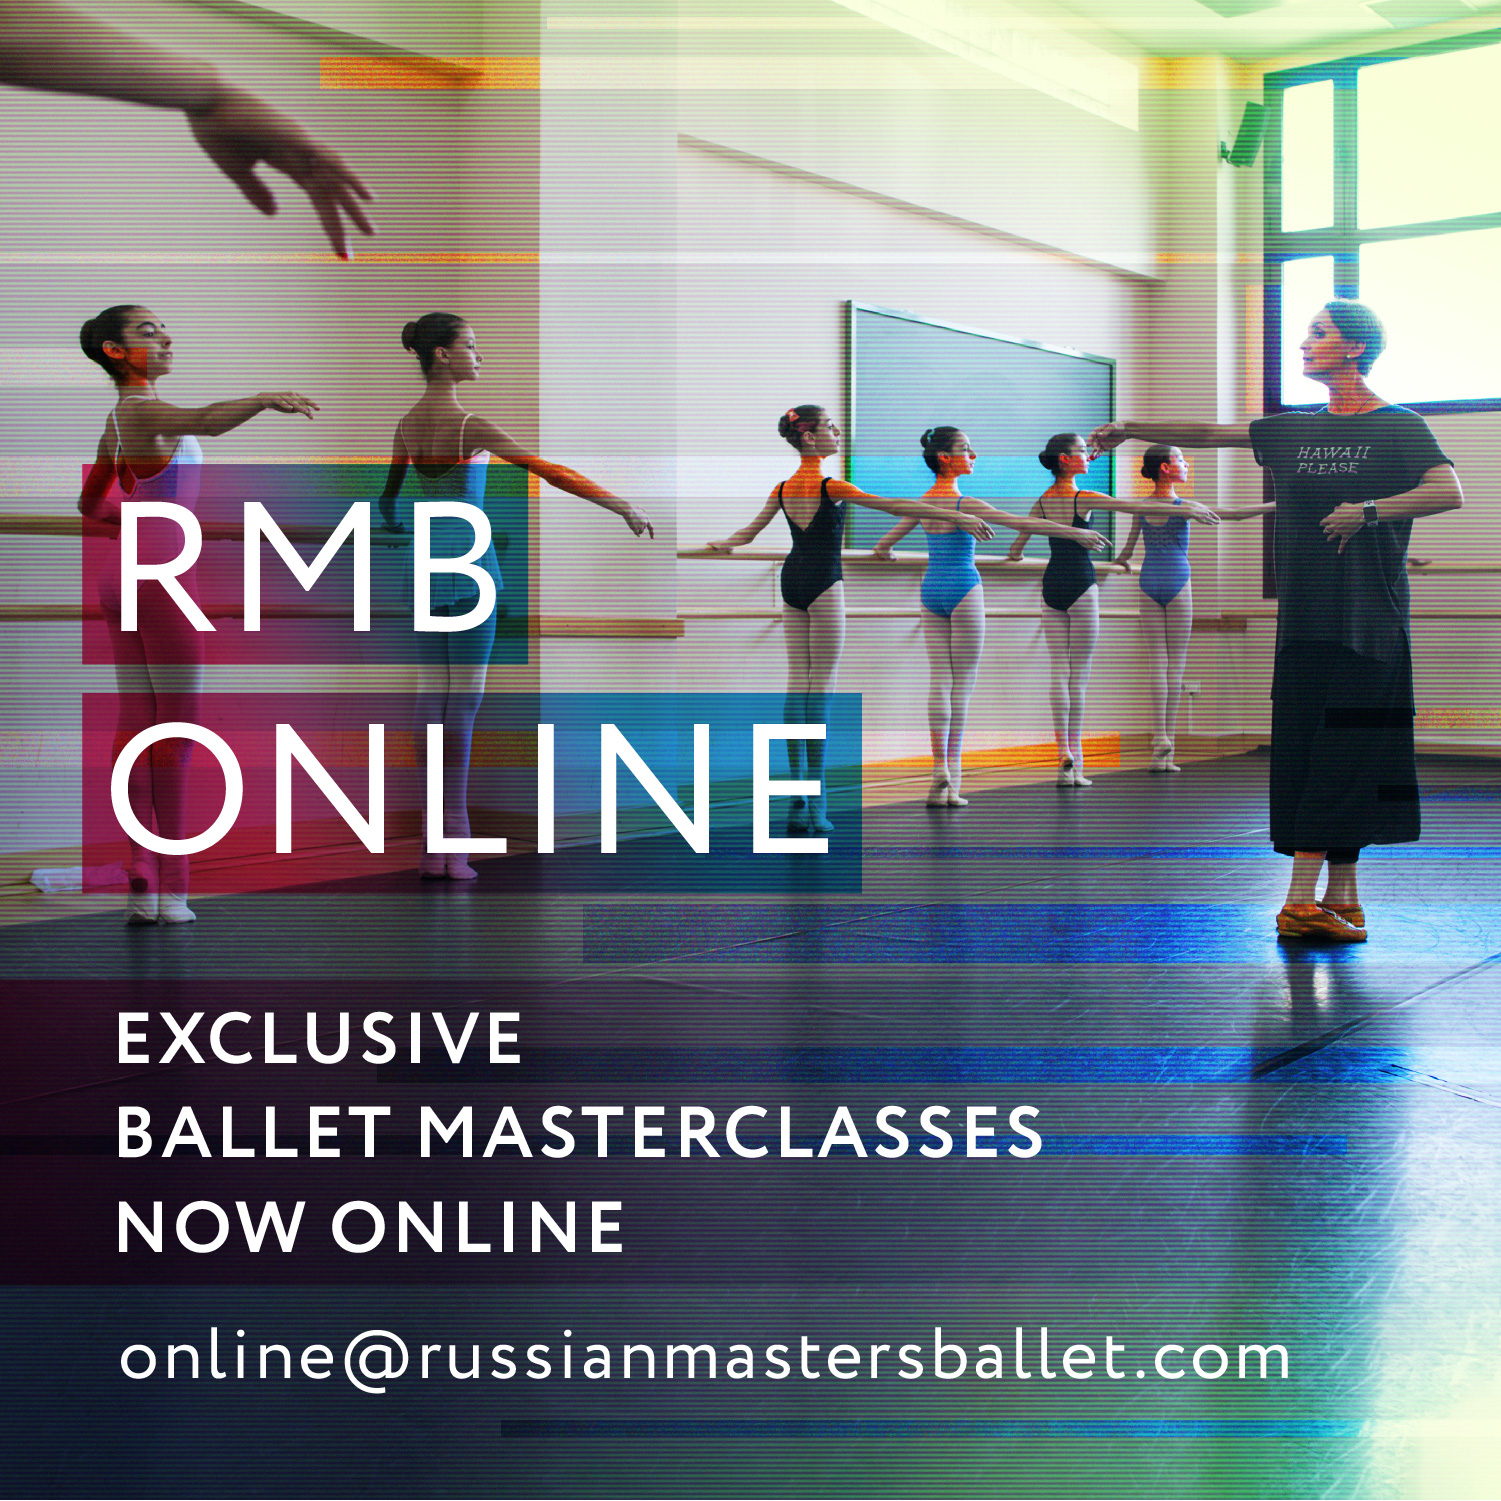 ballet masterclasses now online